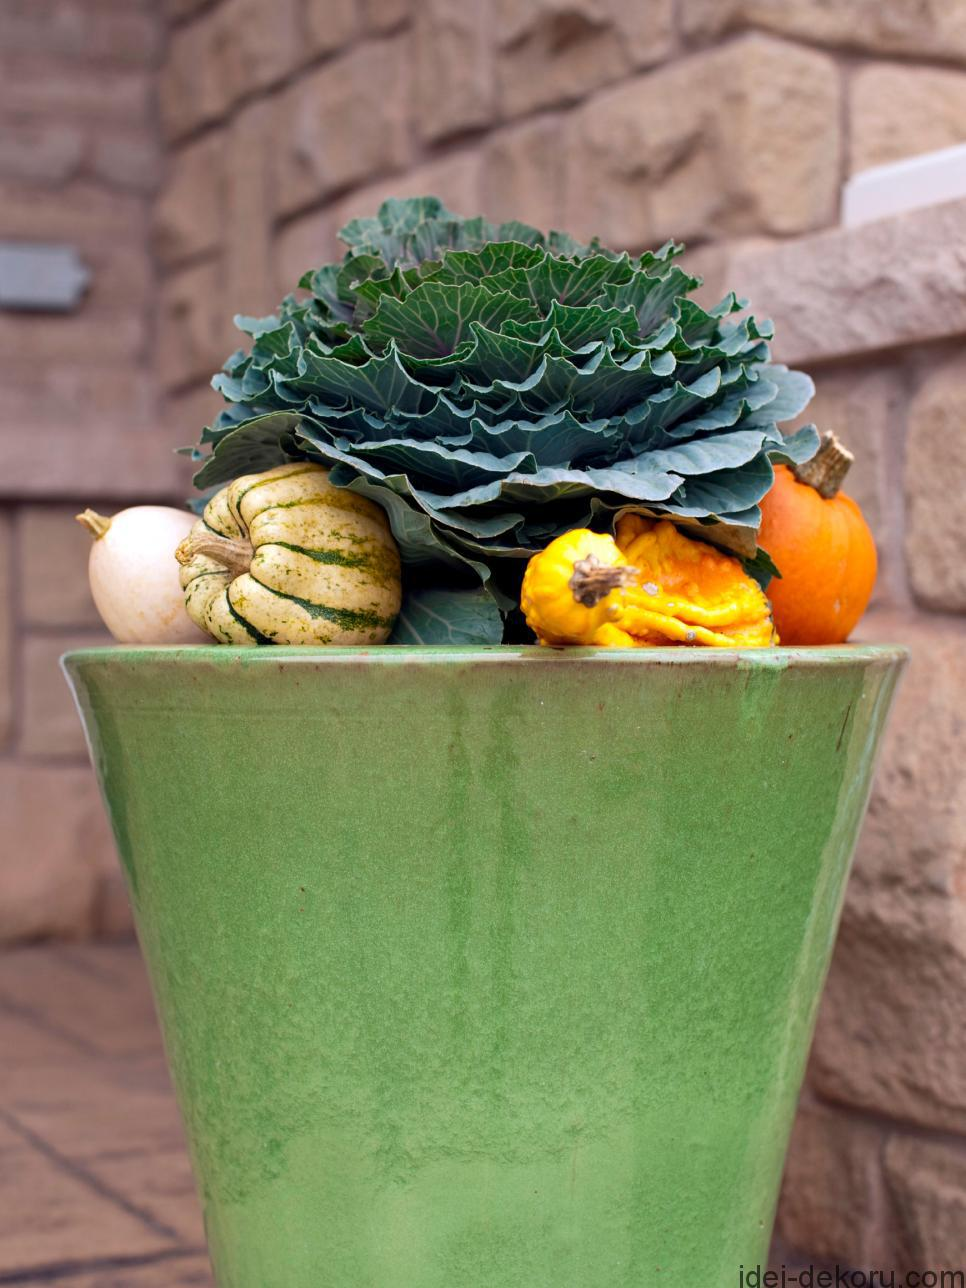 istock-010834232_fall-cabbage-gourds_s3x4-jpg-rend-hgtvcom-966-1288